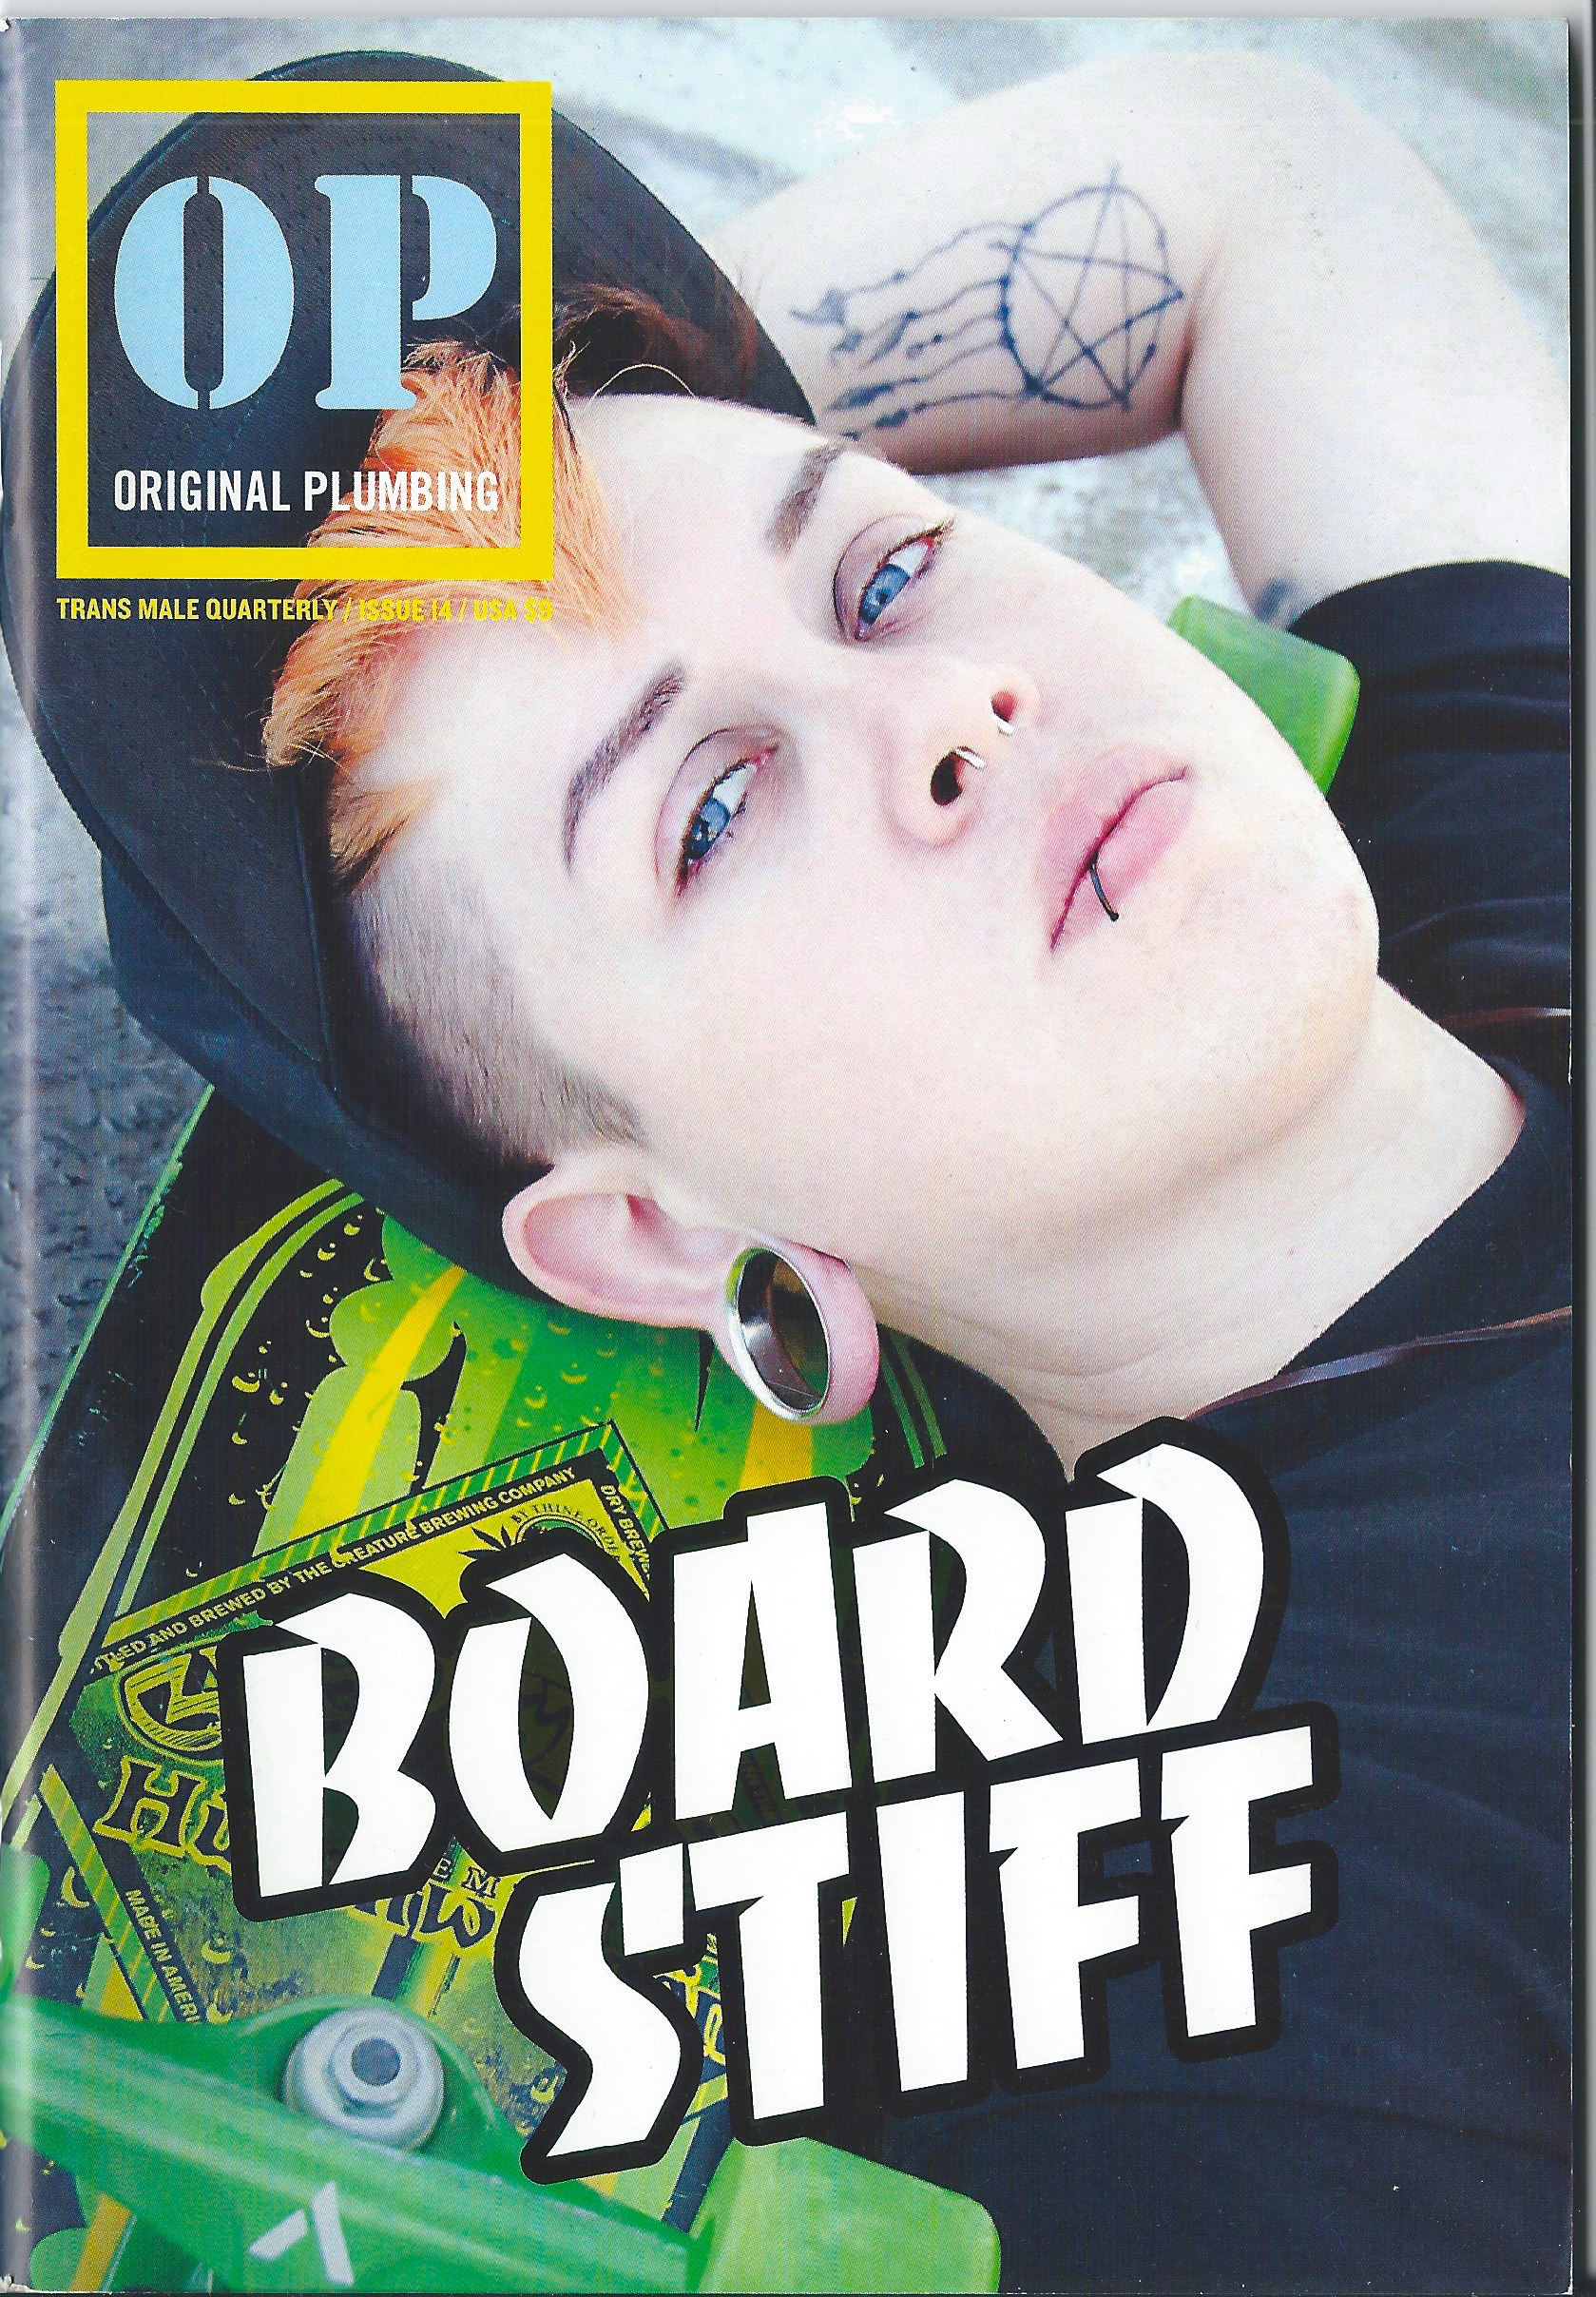 OP #14, Cover photo by Ev Marquee